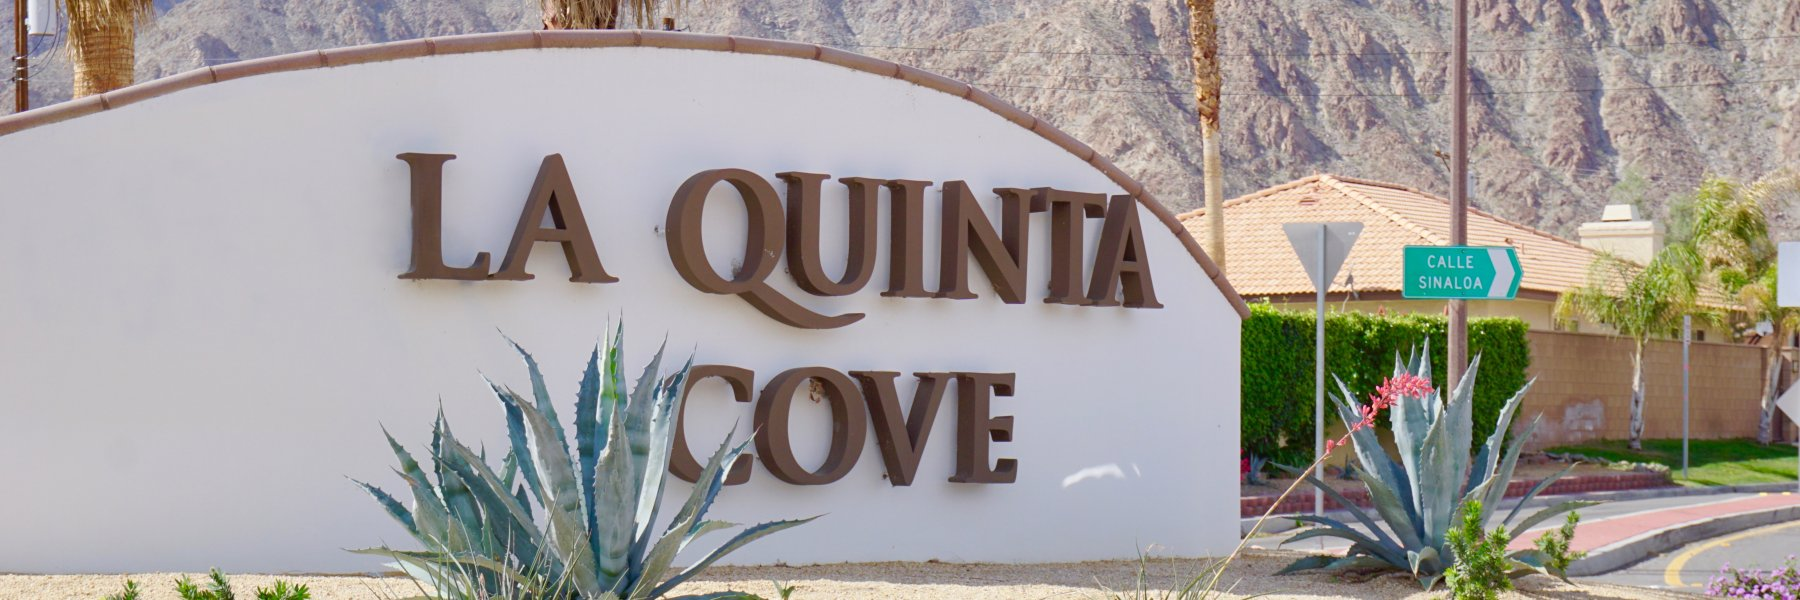 La Quinta Cove is a community of homes in La Quinta California